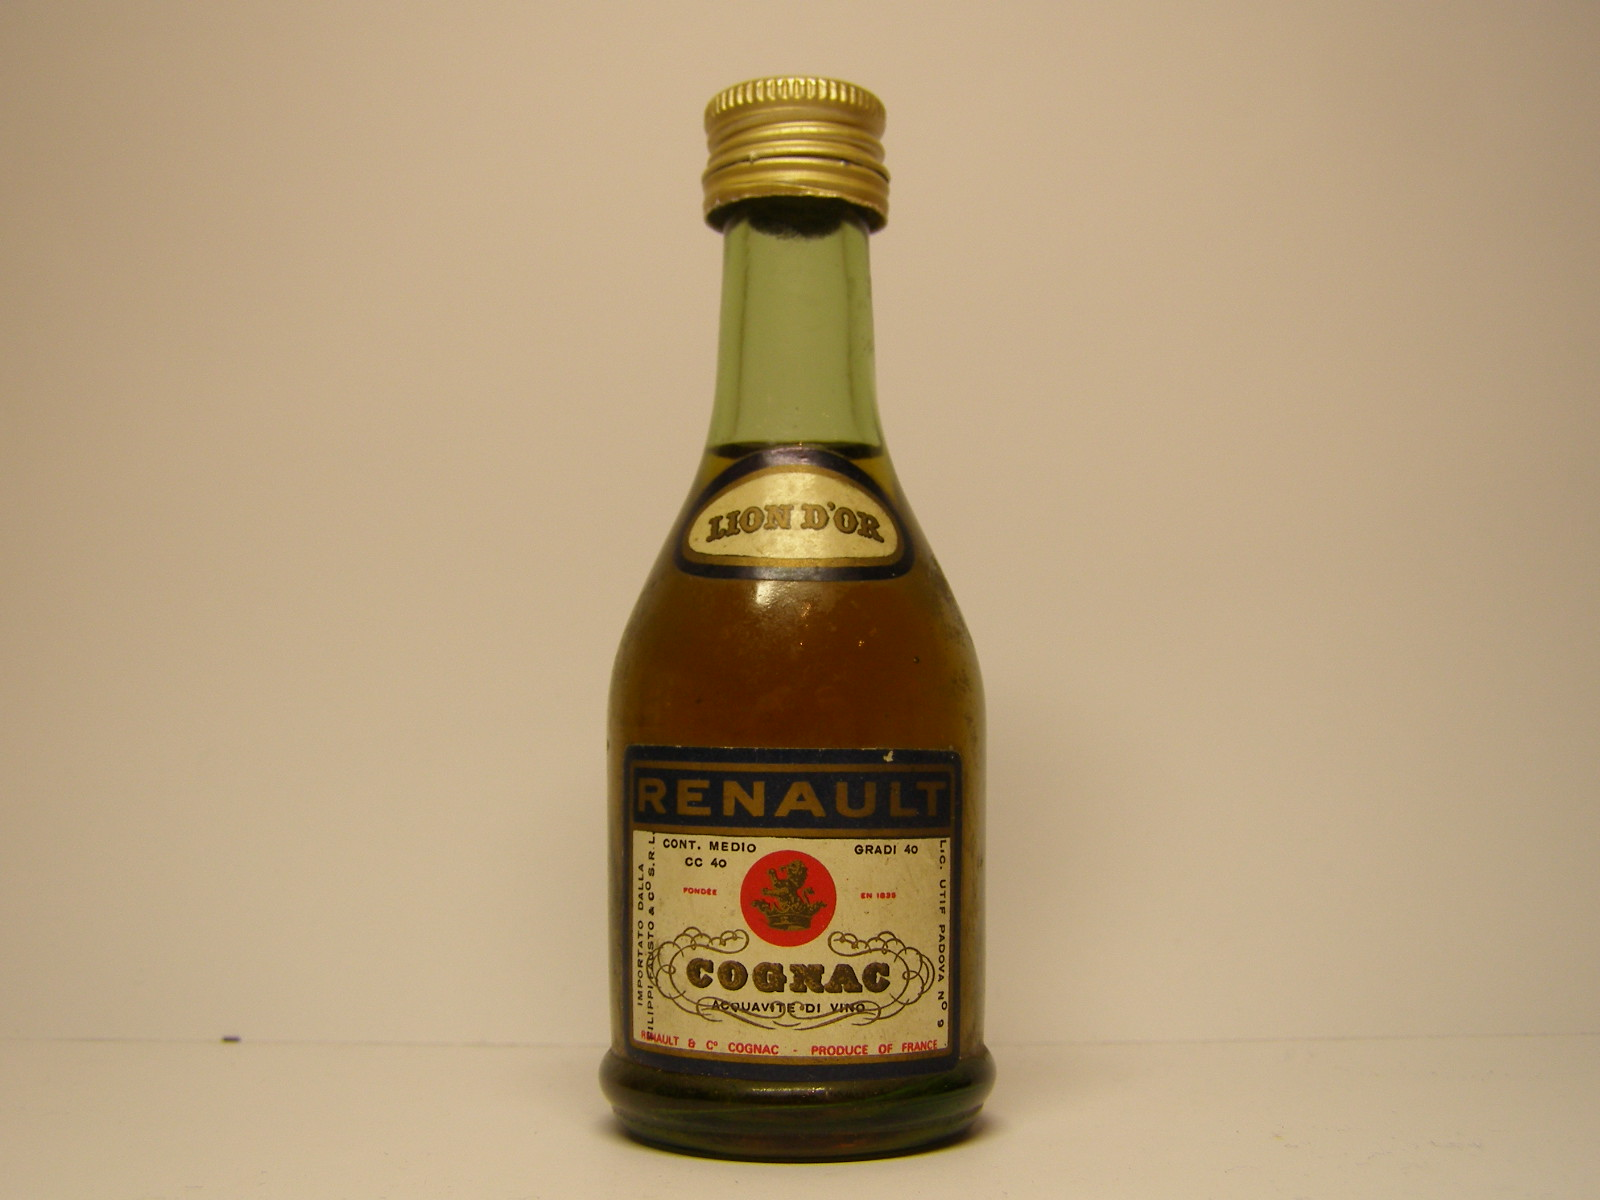 RENAULT Lion d´or Cognac